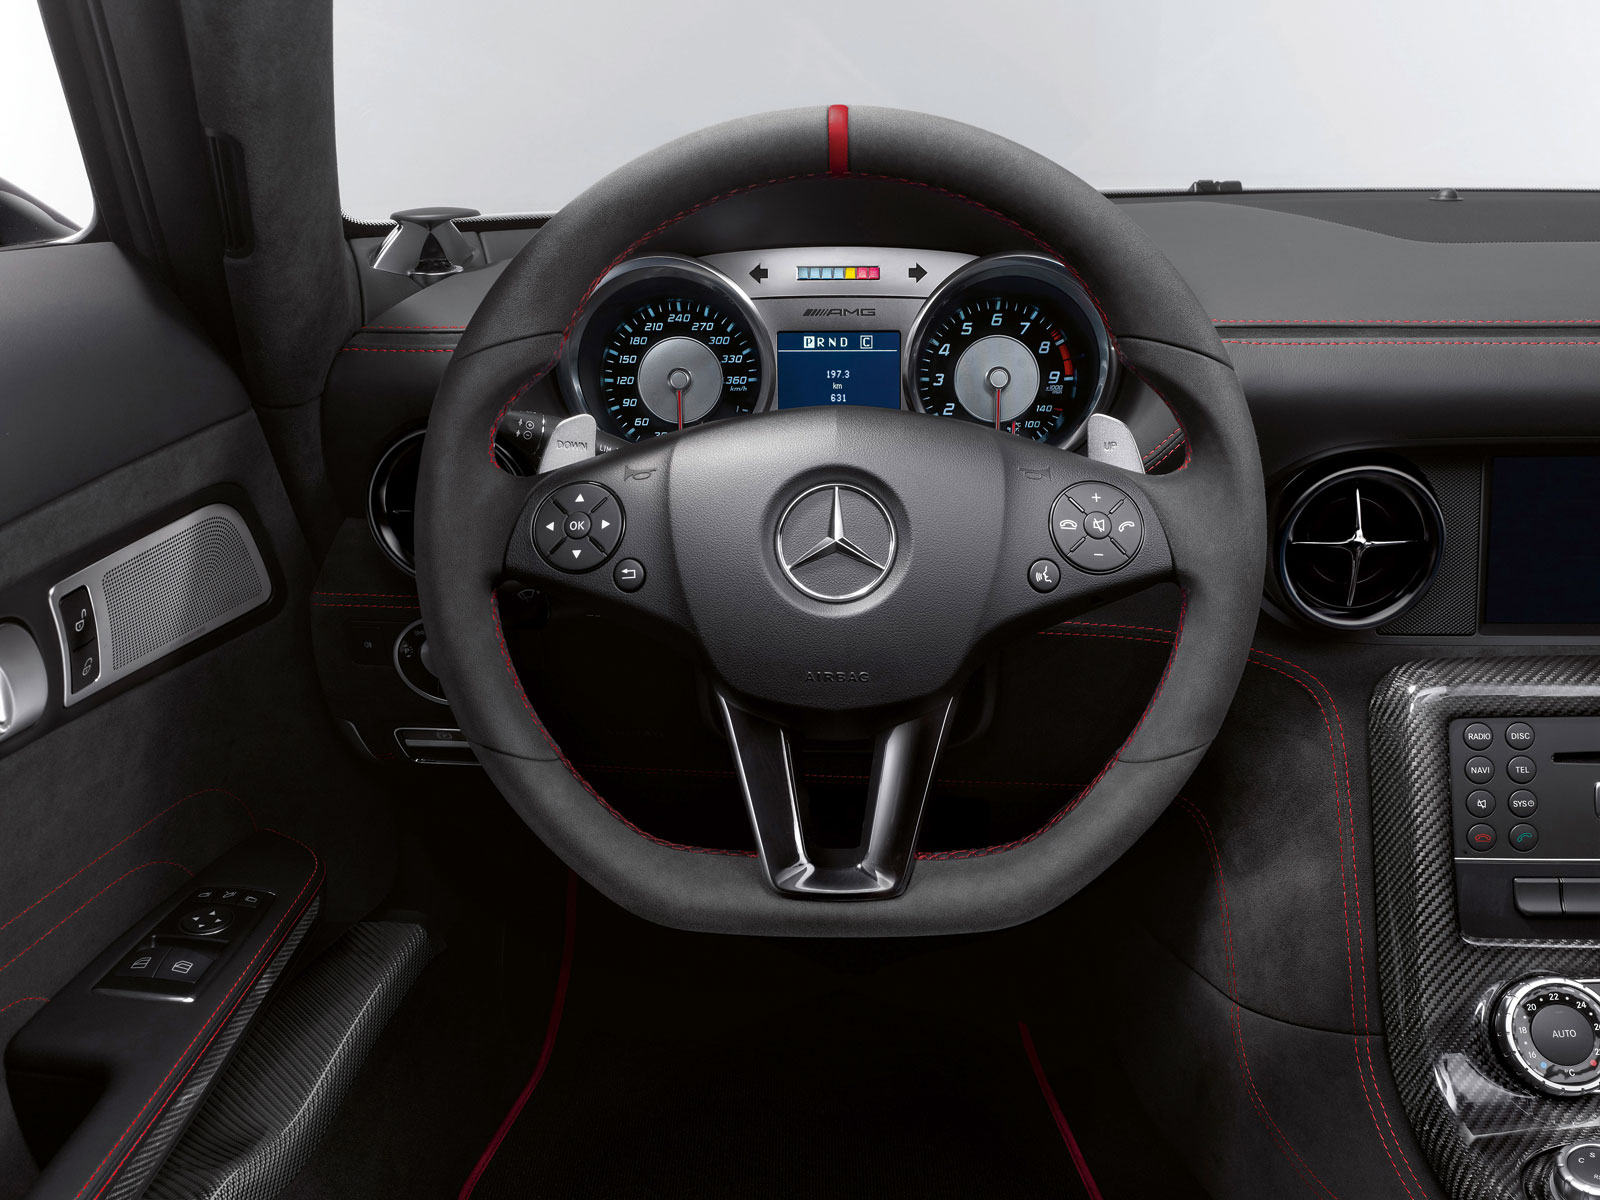 Mercedes-Benz SLS AMG Black Series Interior Steering Wheel - Car ...